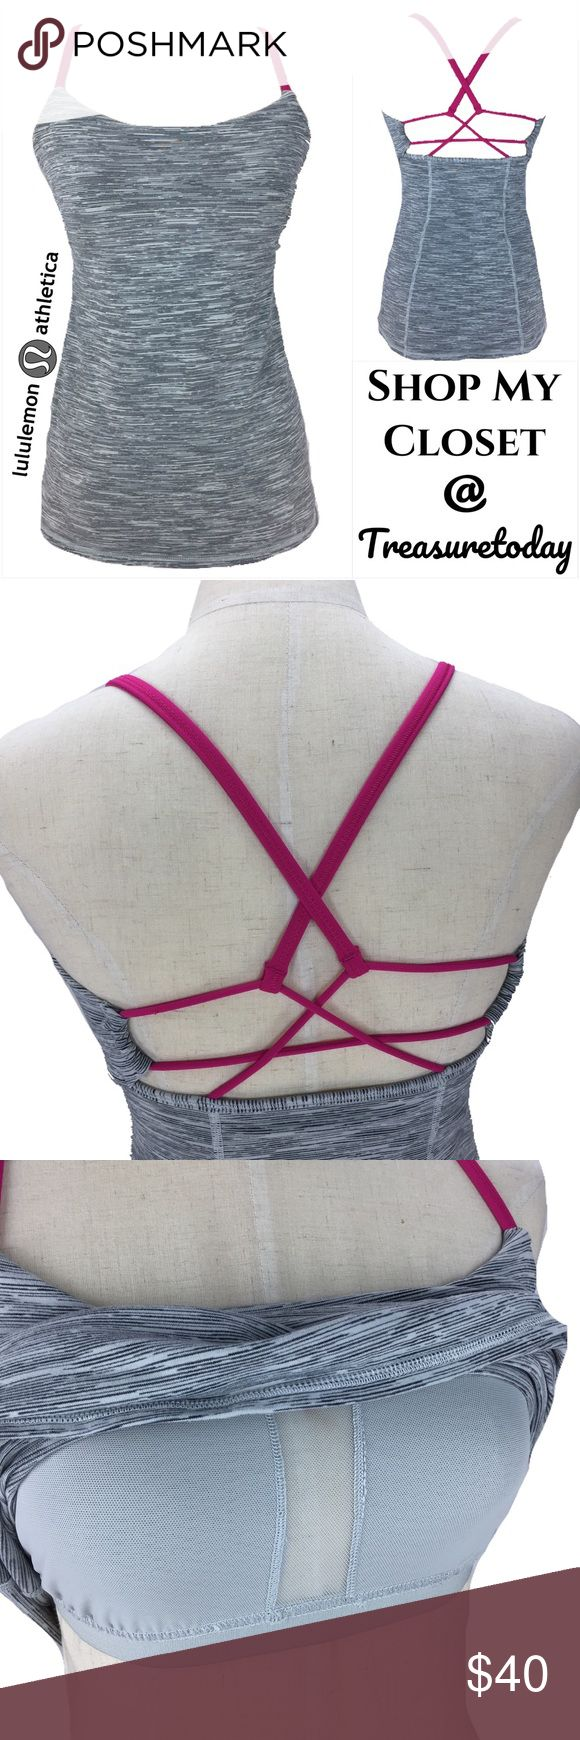 Lululemon Athletica Gray & Pink Open Back Tank Top Beautiful Top with built in bra. Cute design in the back. Gray with pink straps. Excellent pre owned condition. No size tag but it's size 6 for sure. Bundle 2 or more items to get discount 💖 lululemon athletica Tops Tank Tops